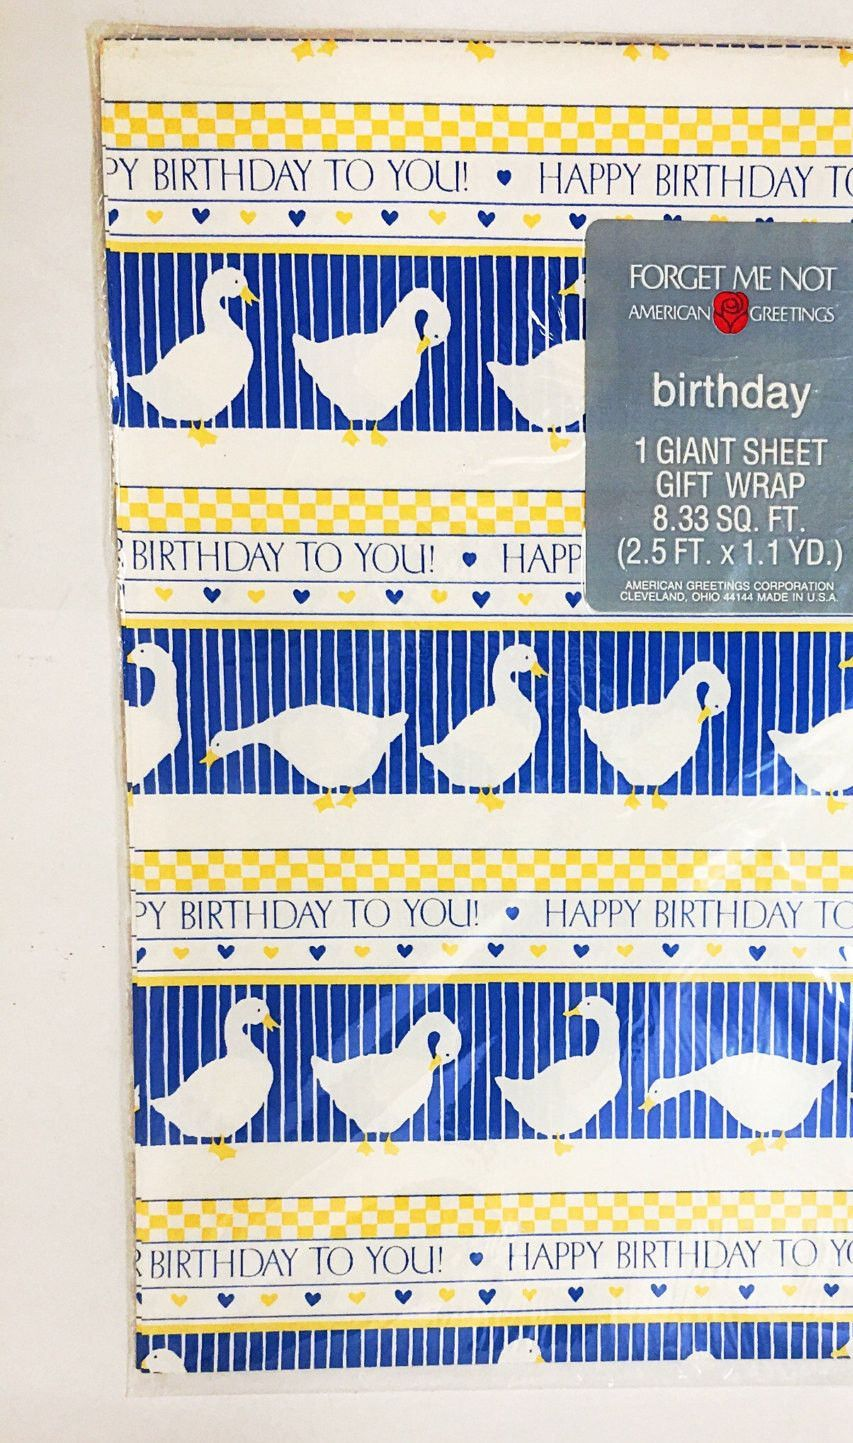 Vintage Gift Wrapping Paper Unused 833 Sq Ft 30 X 40 In